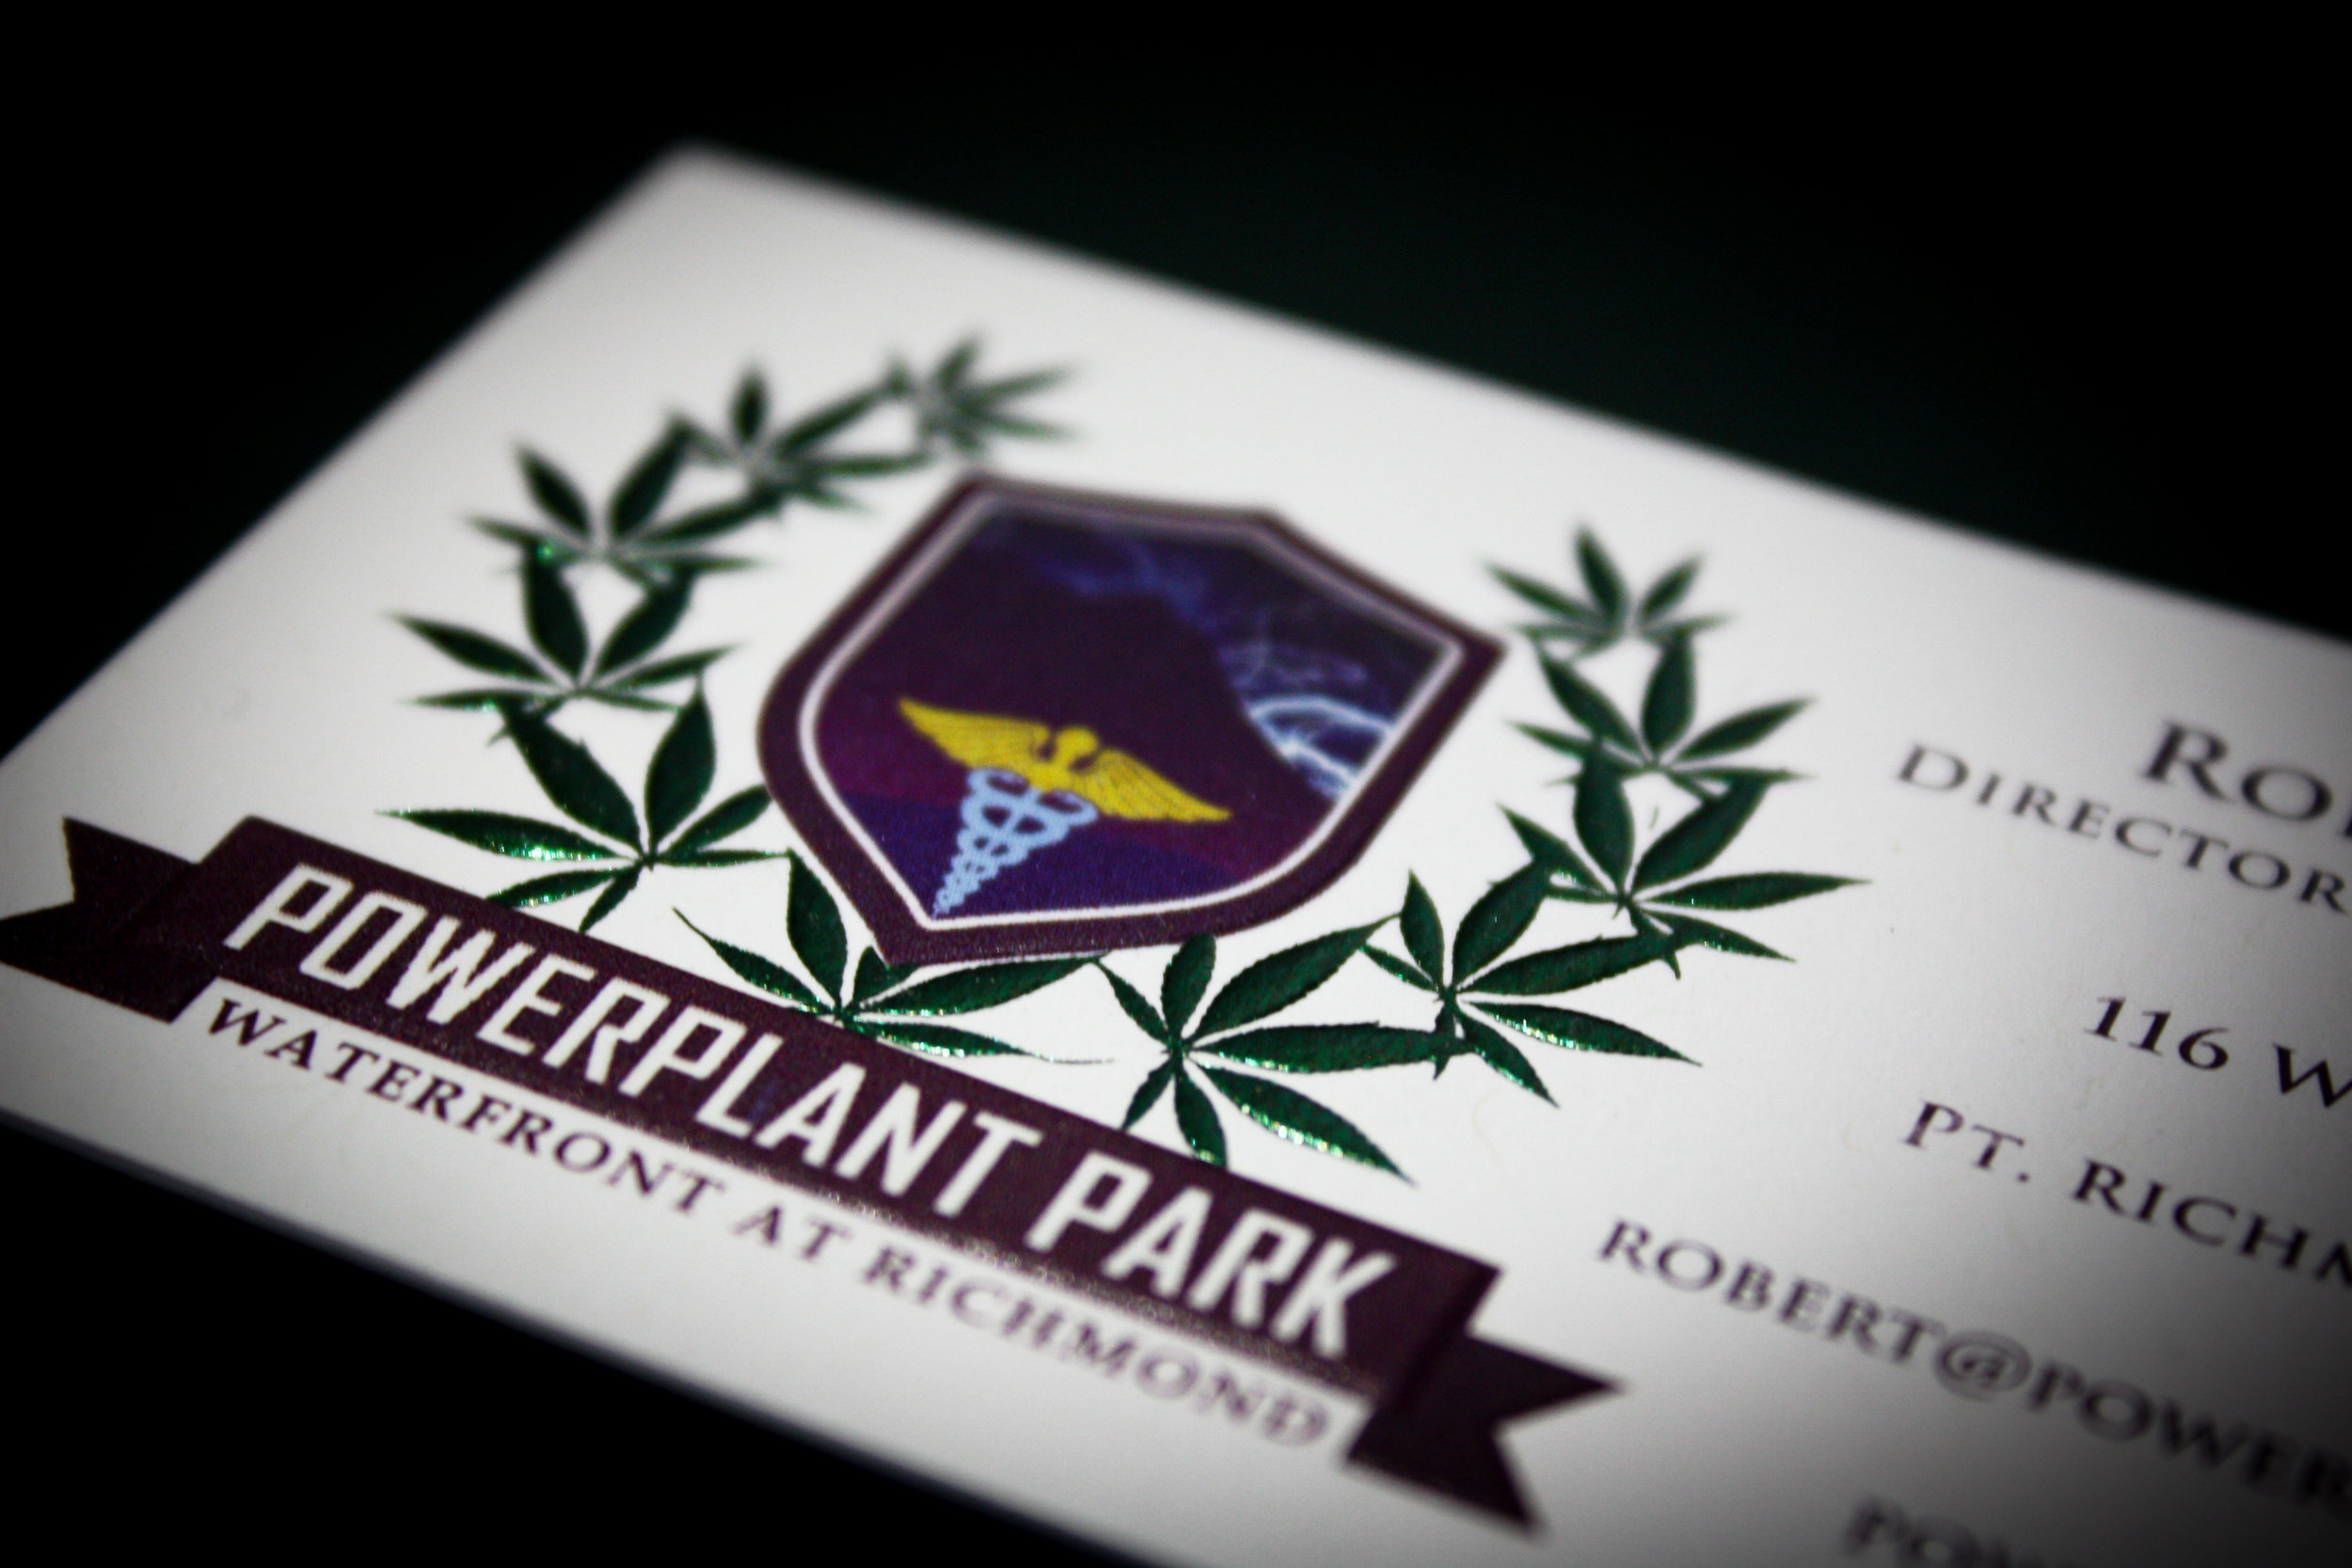 Powerplant Park Client:  Minuteman Press - Marin  Business card printed full color. Foil and sculpted emboss front. Mounted 2-ply and trimmed.